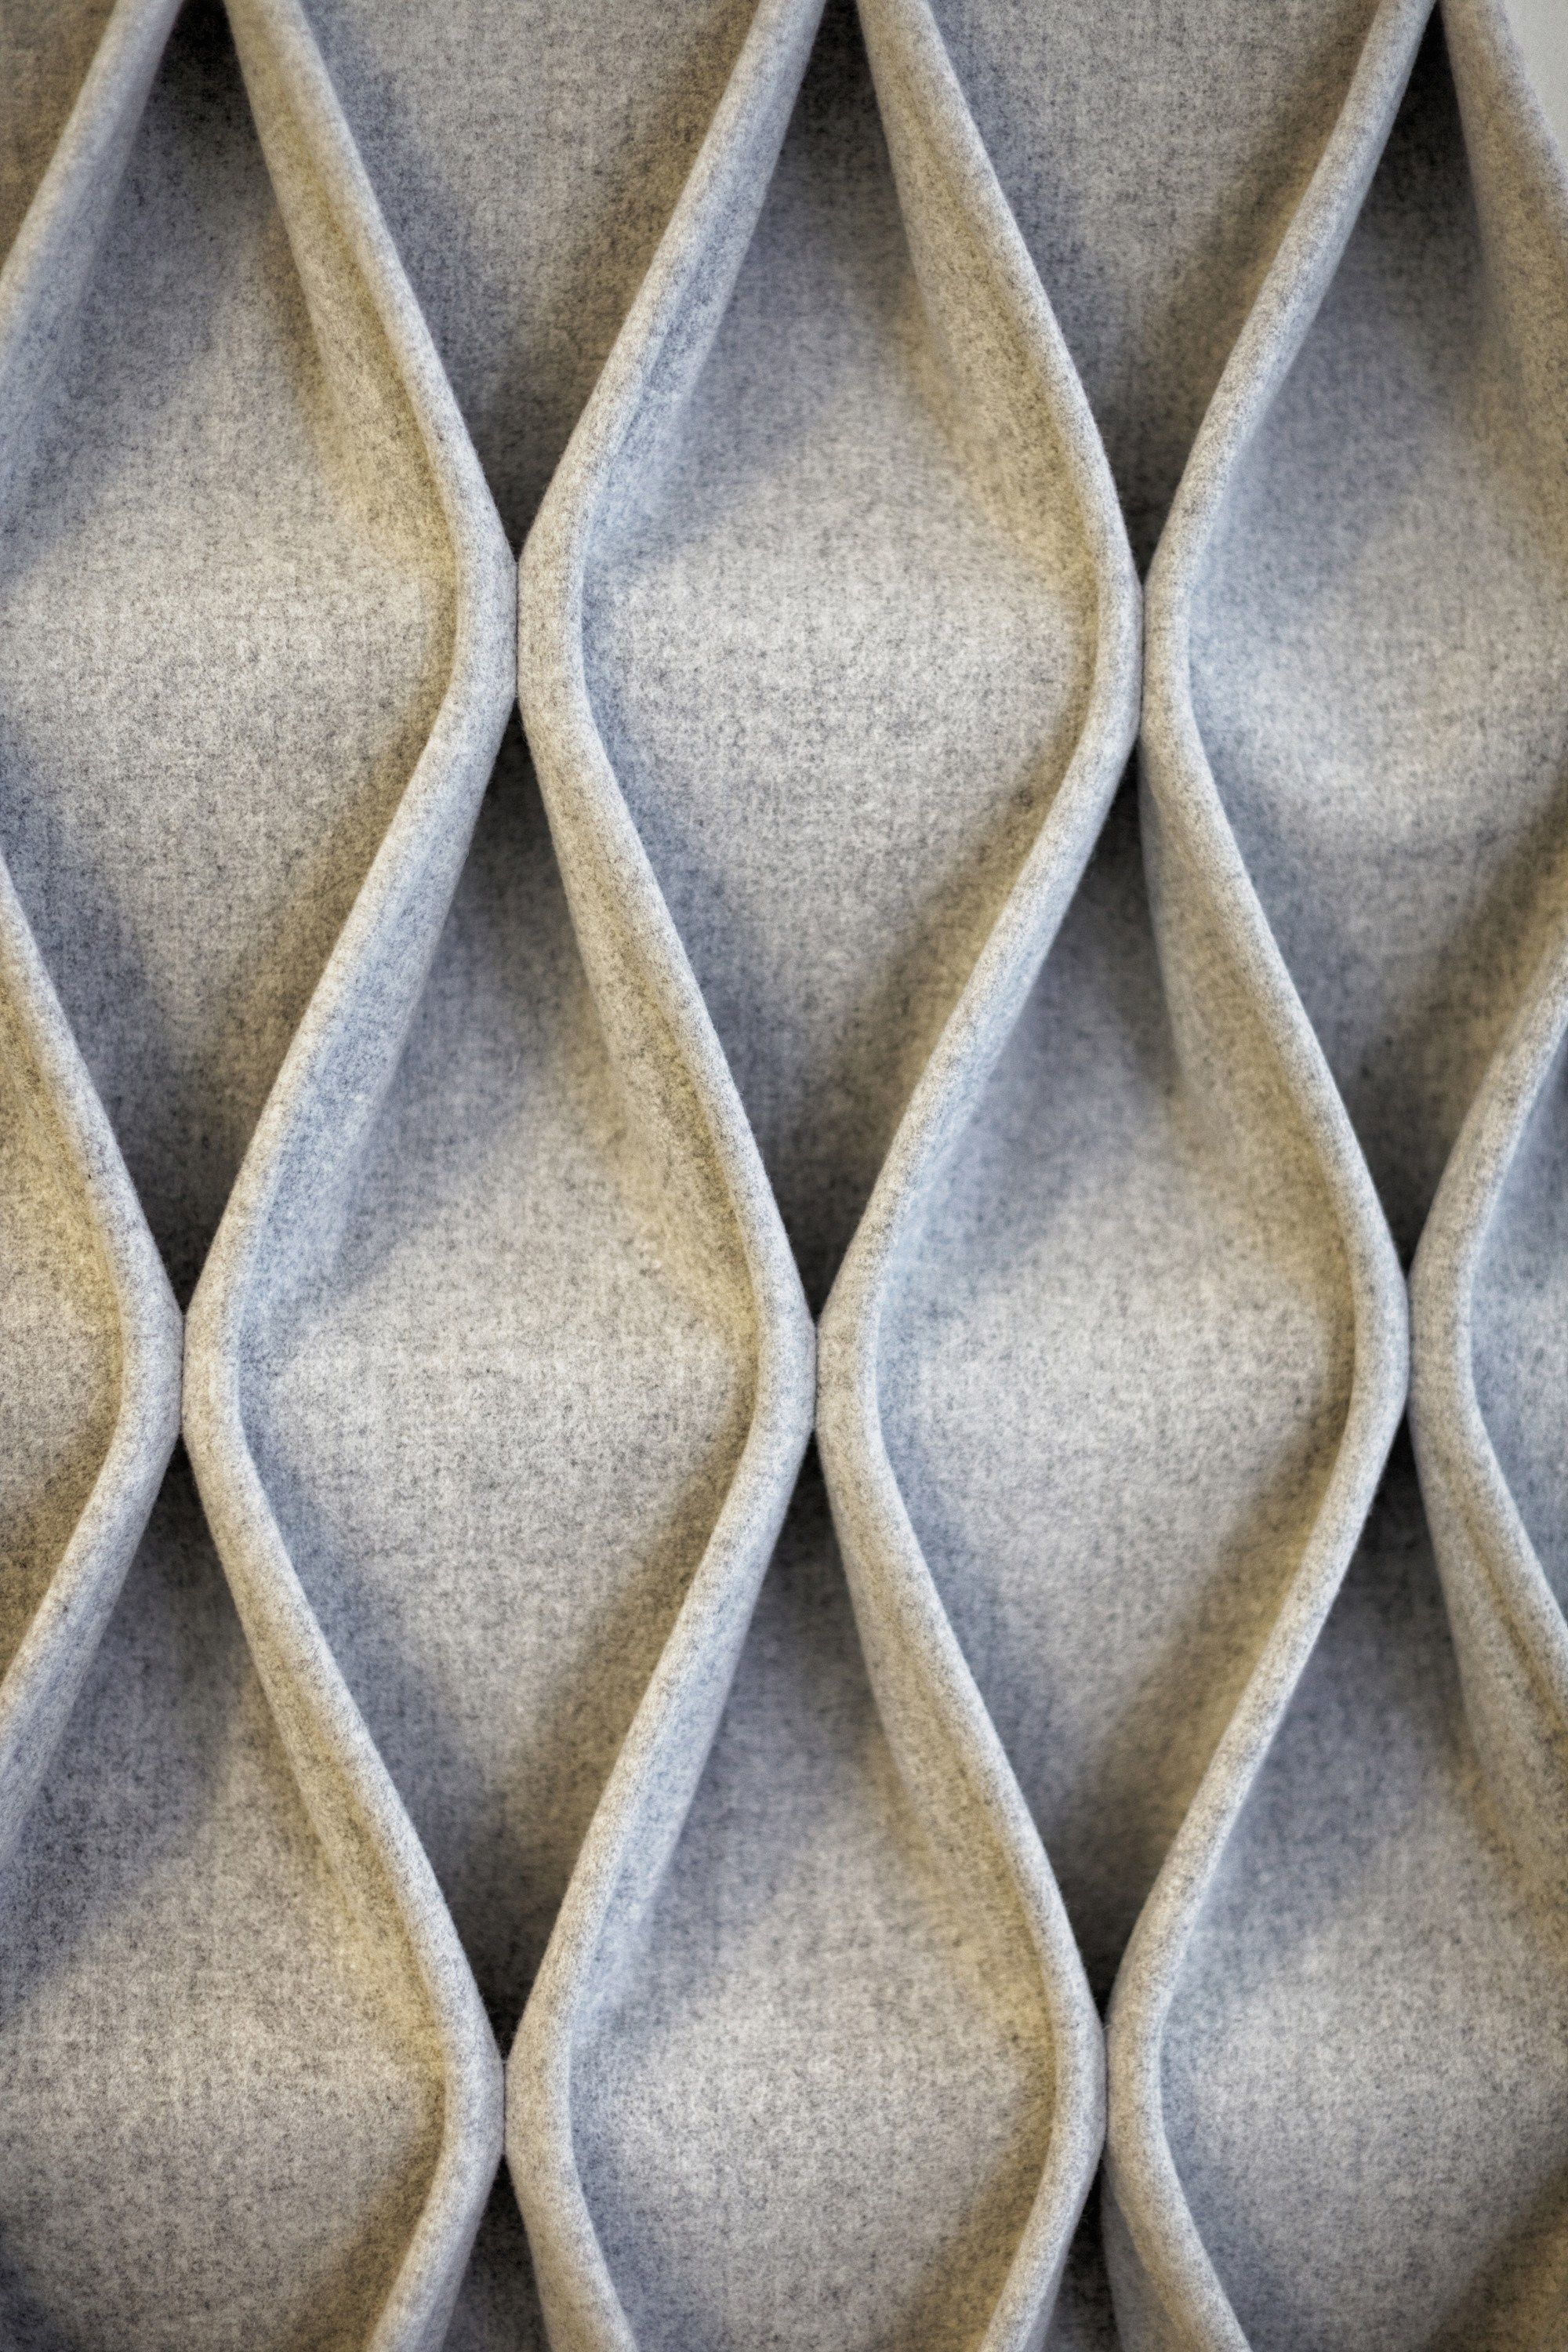 Cable Fabric Decorative Acoustical Panels By Anne Kyyro Quinn